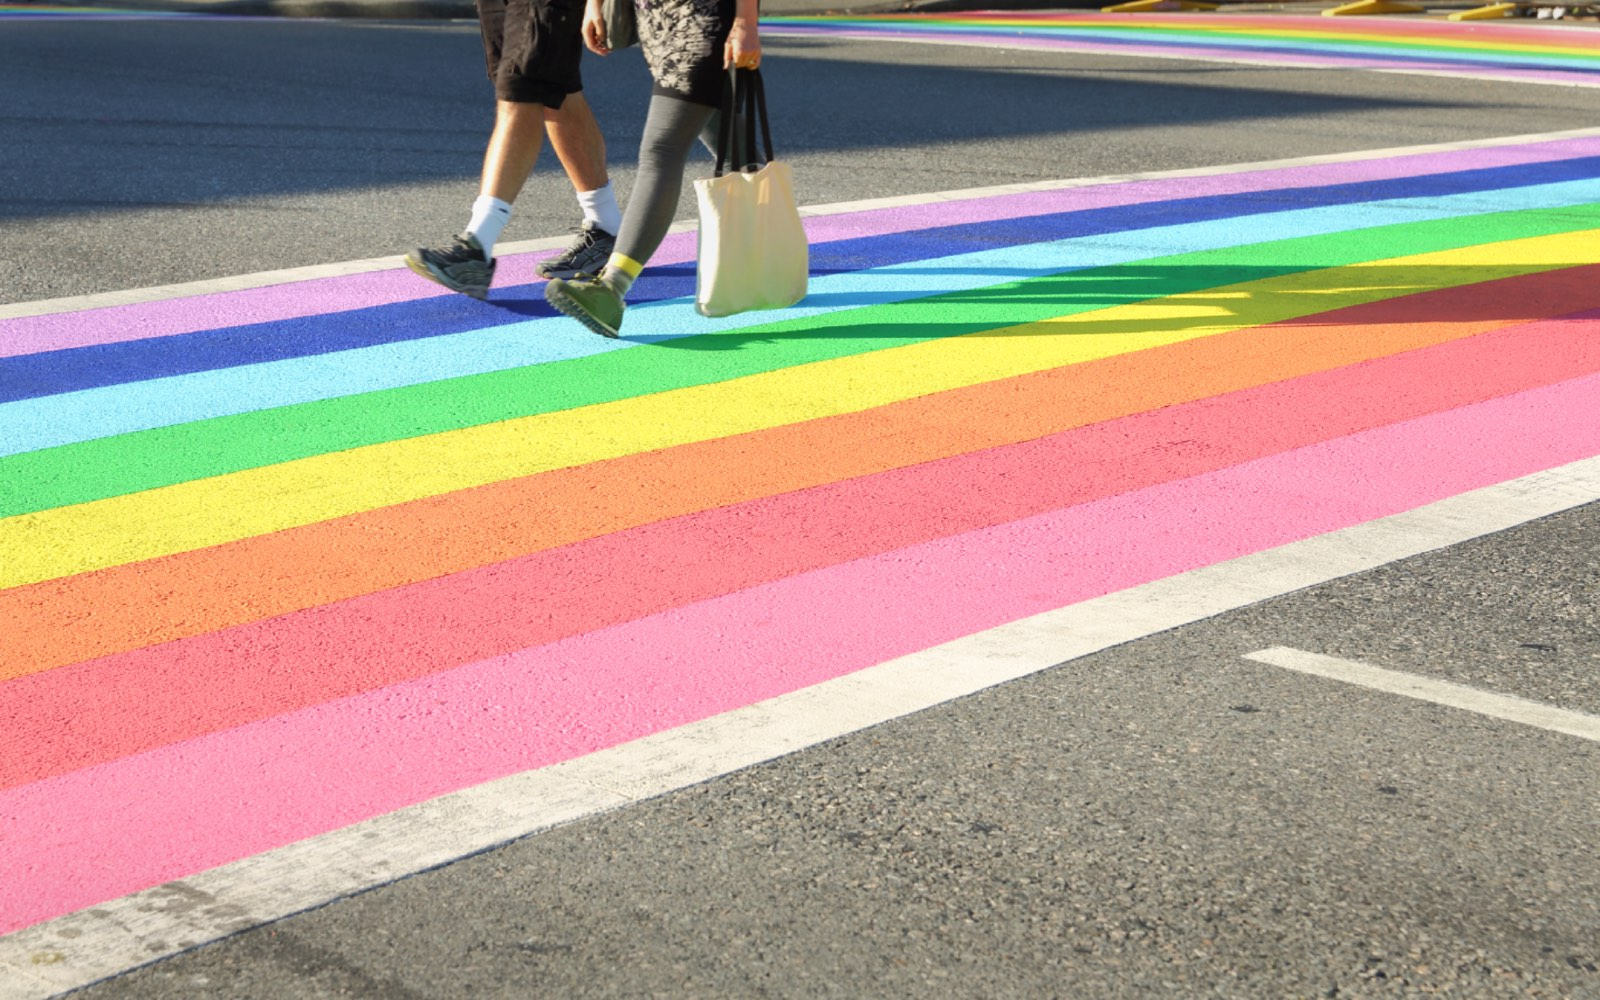 The rainbow sidewalk in Vancouver's Davie Village